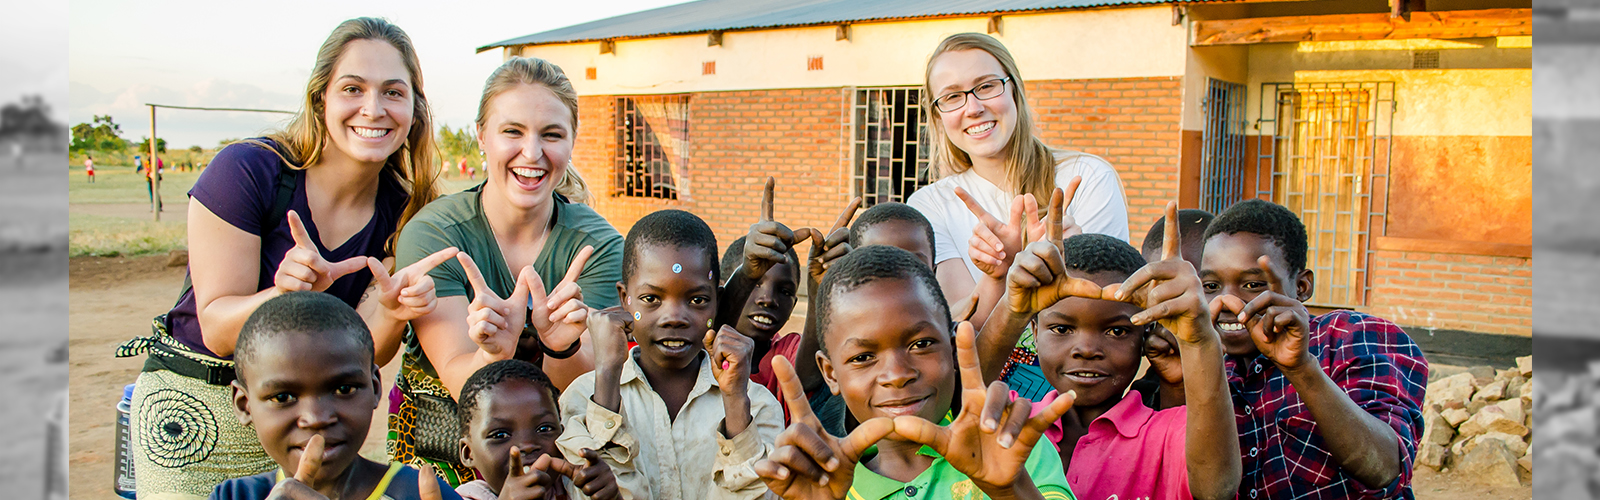 "Student Nurses in Malawi, posing with cute, Malawi children making the ""W"" symbol with their hands."